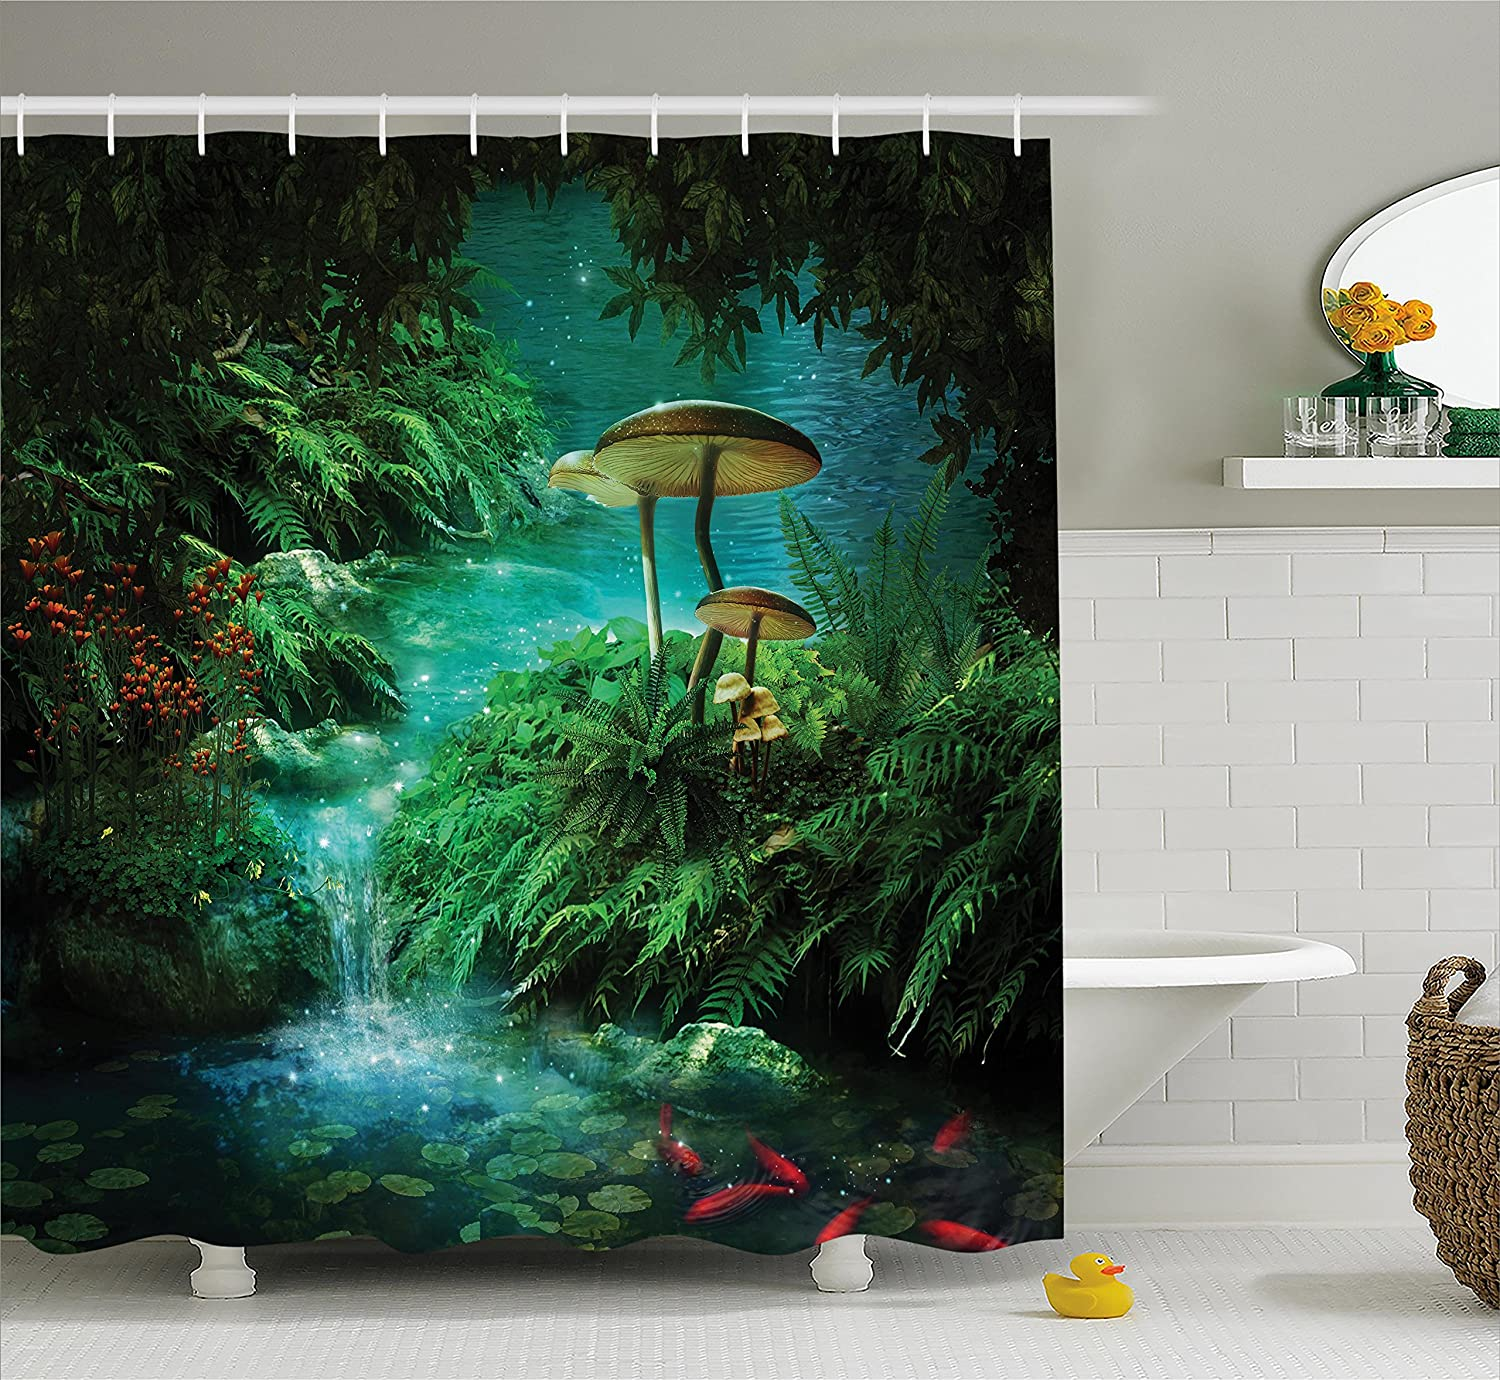 Ambesonne Fantasy House Decor Collection, View Of Fantasy River with A Pond, Fish And Mushroom in Jungle Trees moss eden, Polyester Fabric Bathroom Shower Curtain Set with Hooks, Green Teal Red